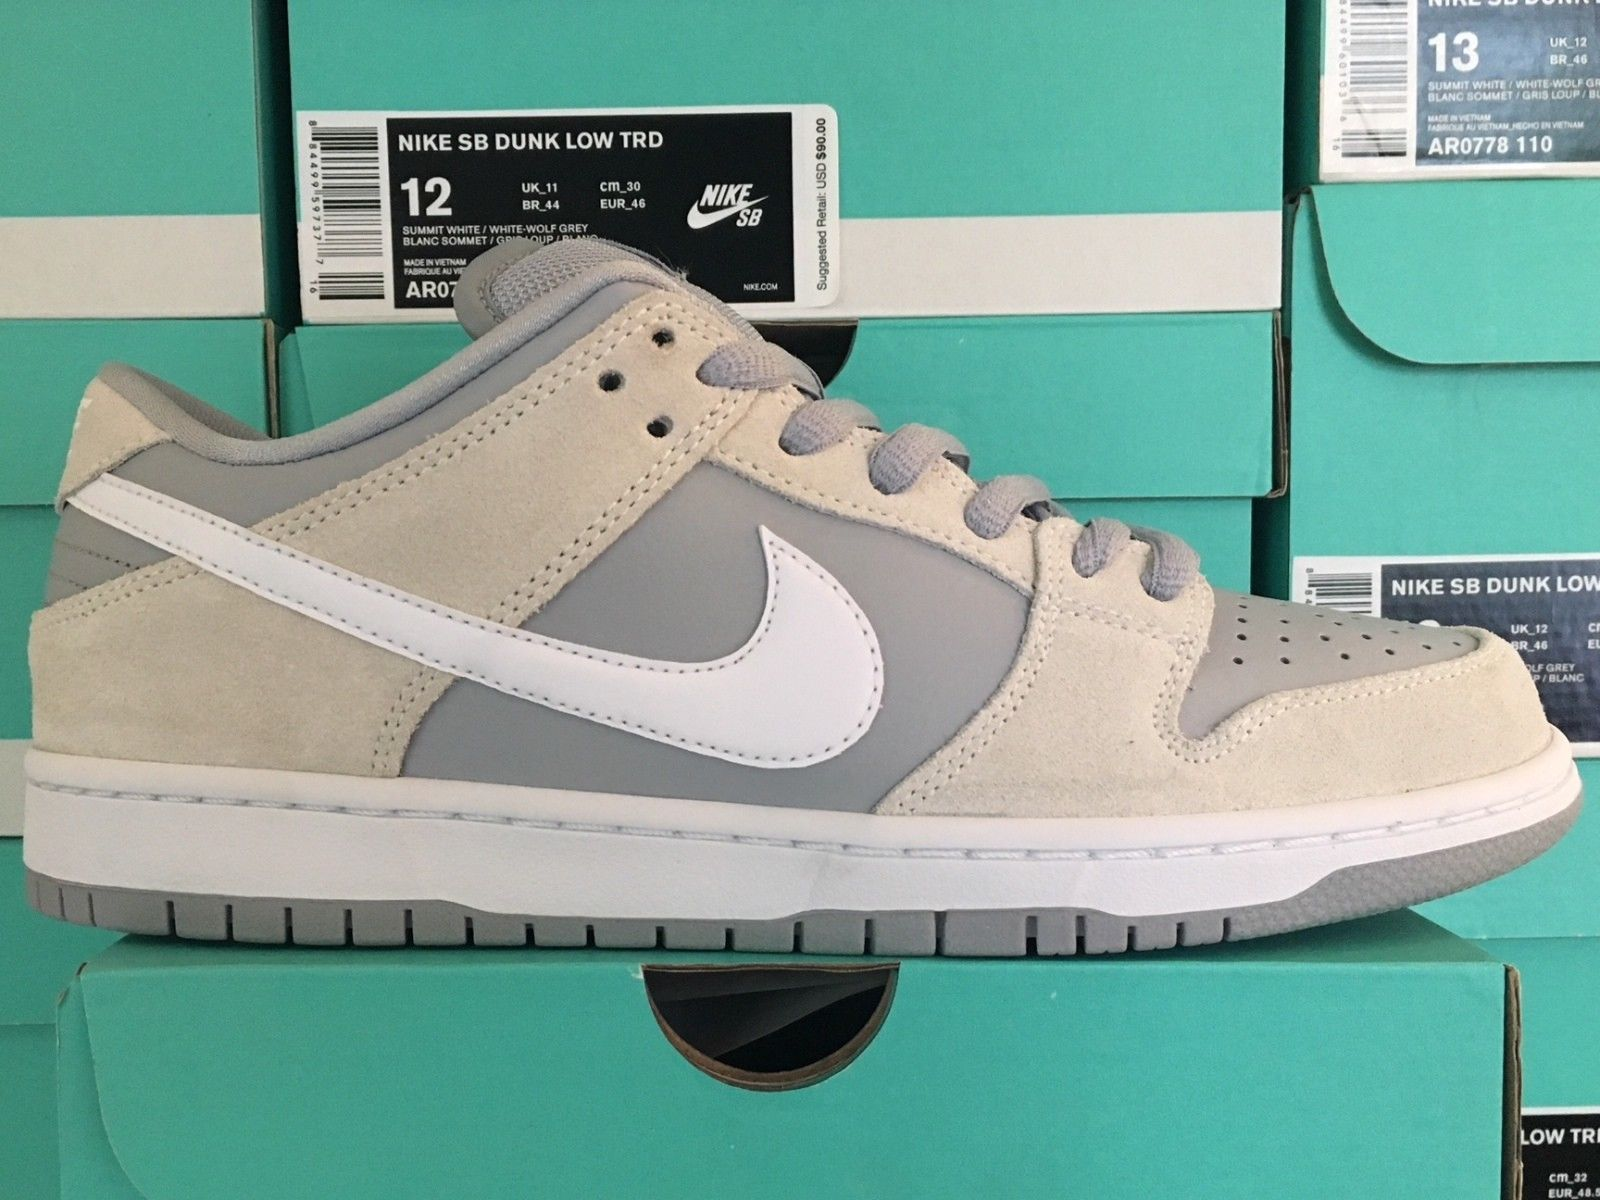 best authentic e8292 a15ff Nike SB Dunk Low TRD Summit White Wolf Grey AR0778-110 Sizes 9.5-12